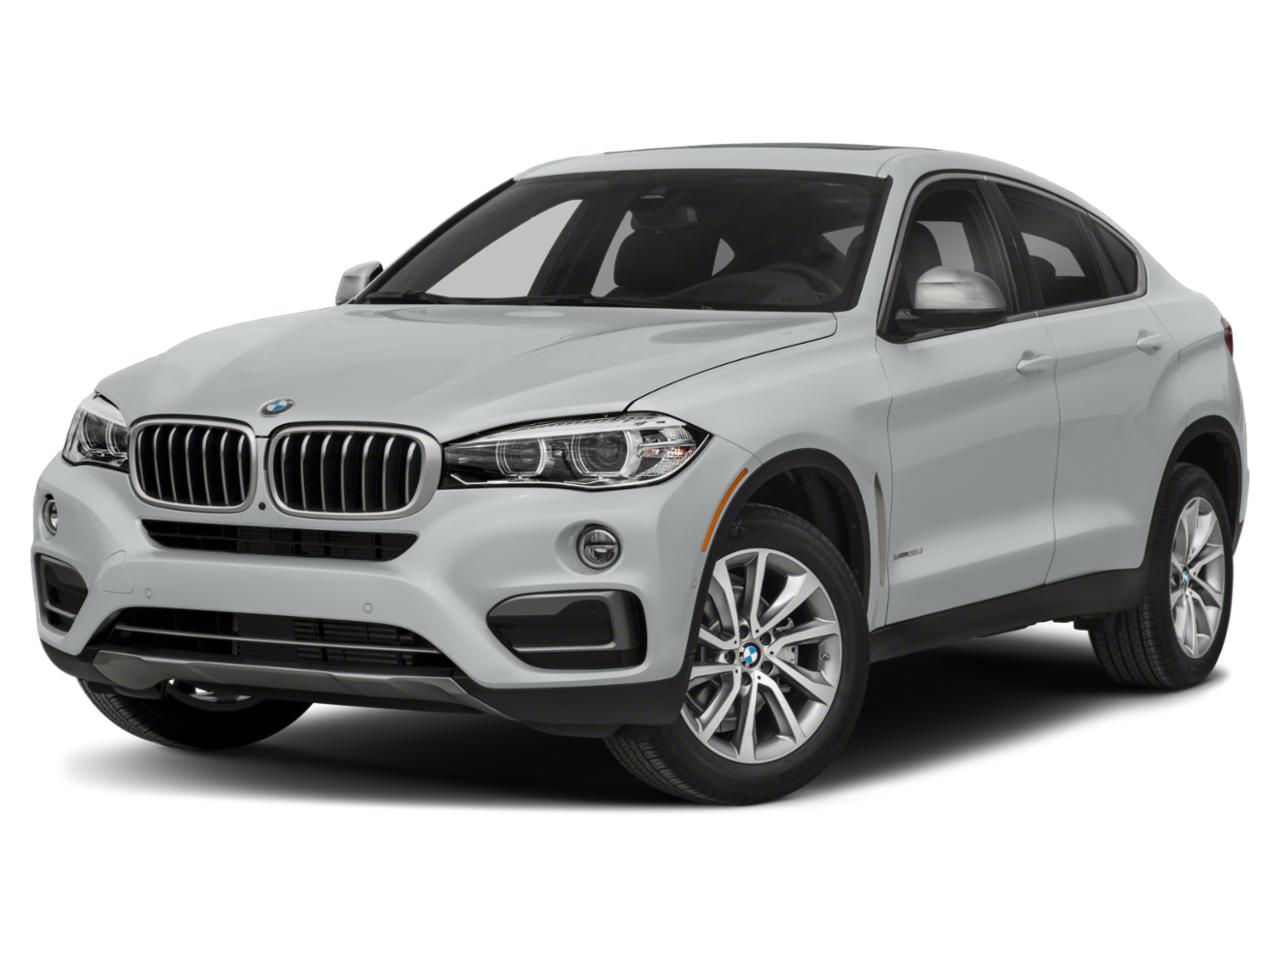 2018 BMW X6 xDrive35i Vehicle Photo in Streetsboro, OH 44241